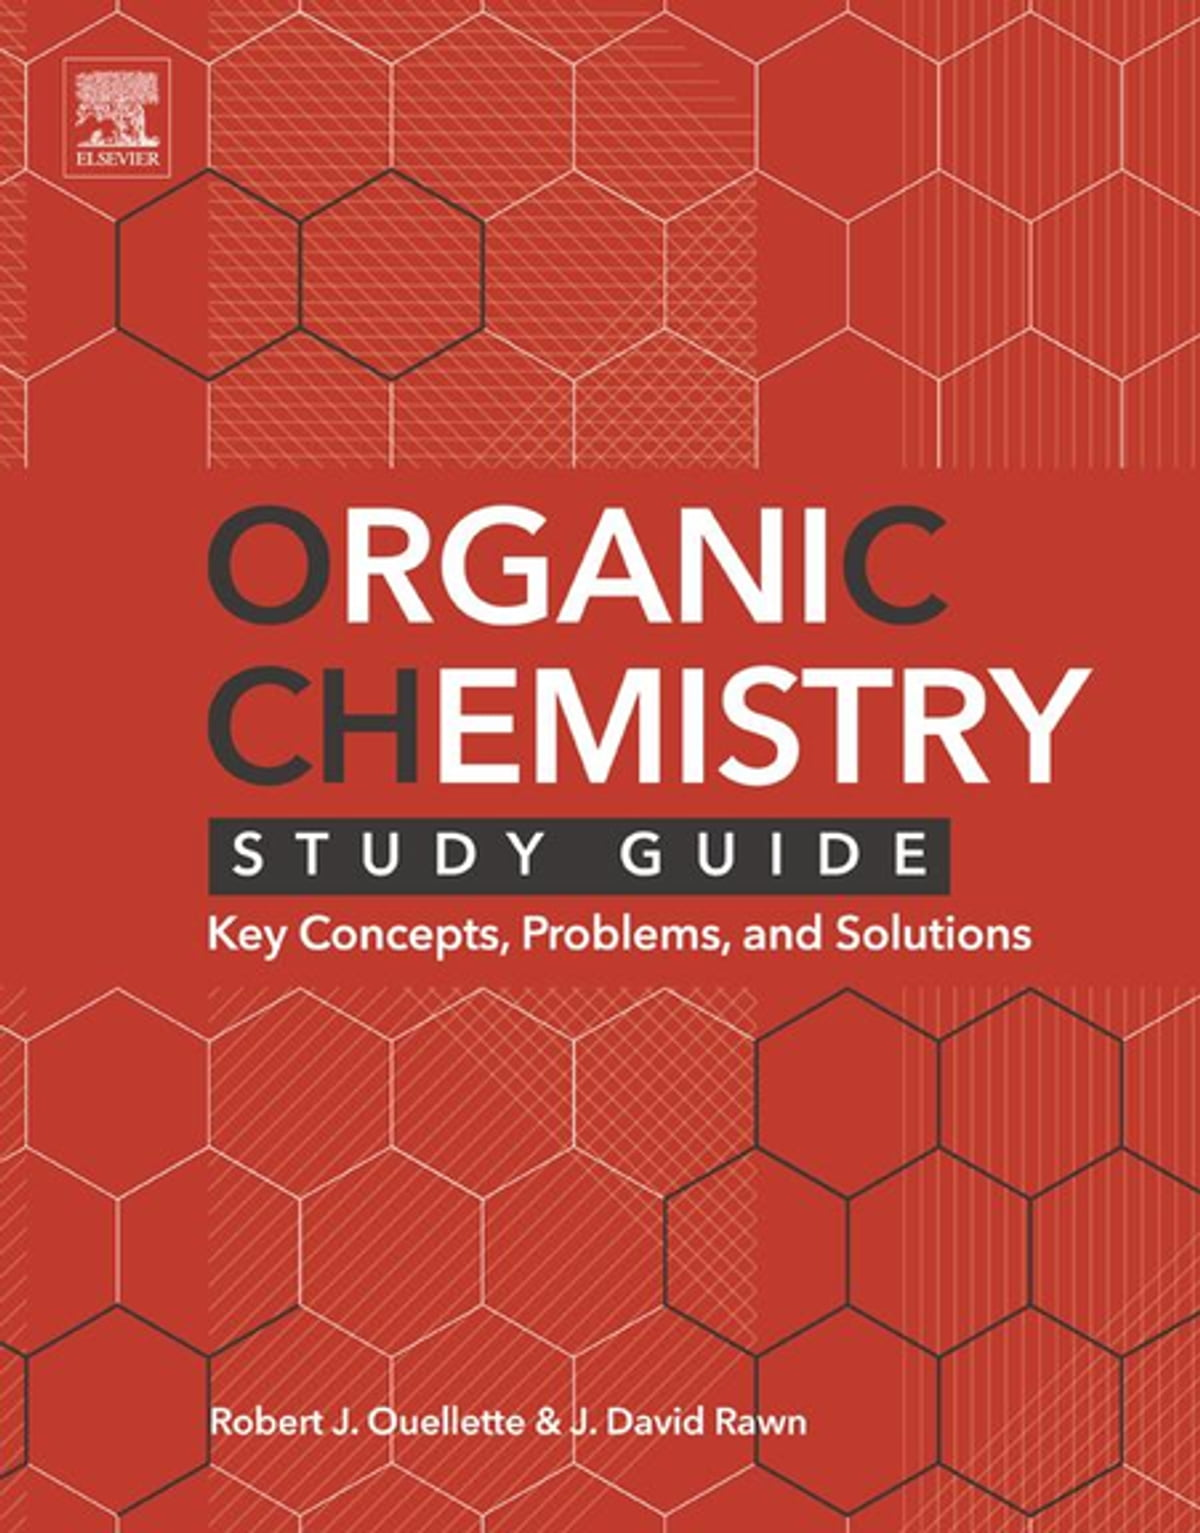 organic chemistry study guide ebook by robert j ouellette organic chemistry study guide ebook by robert j ouellette 9780128018644 kobo